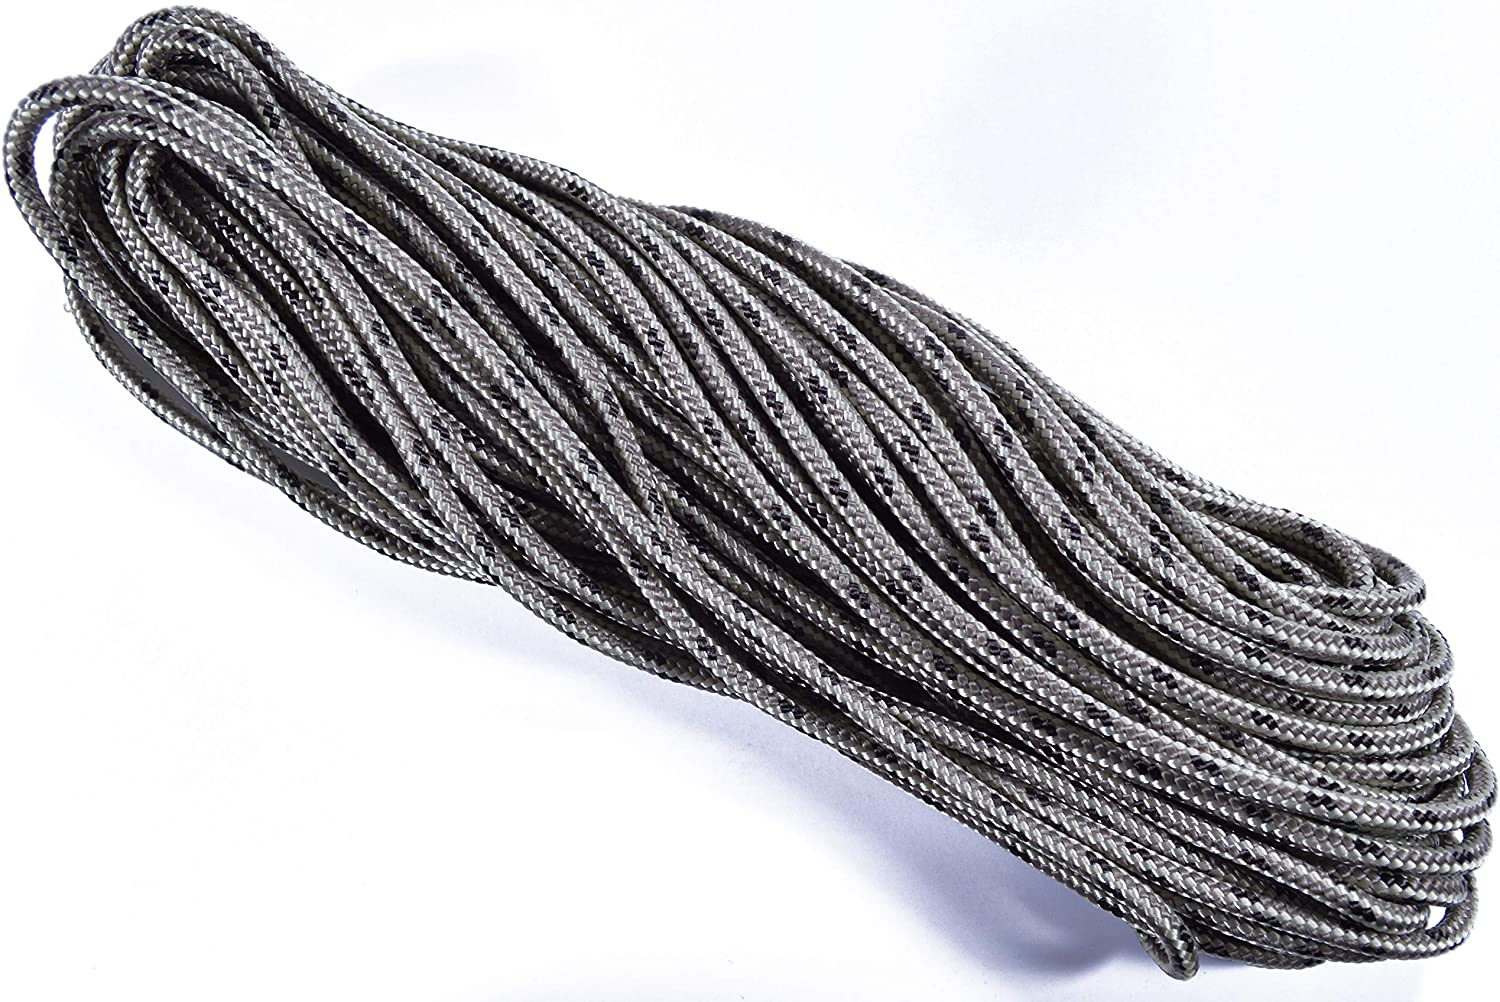 Towing Olive Drab Moisture Mooring Lines Rot Resistant Boating Oil Rope 3//16 inch 50 Feet Antenna Guy Line Anchor UV